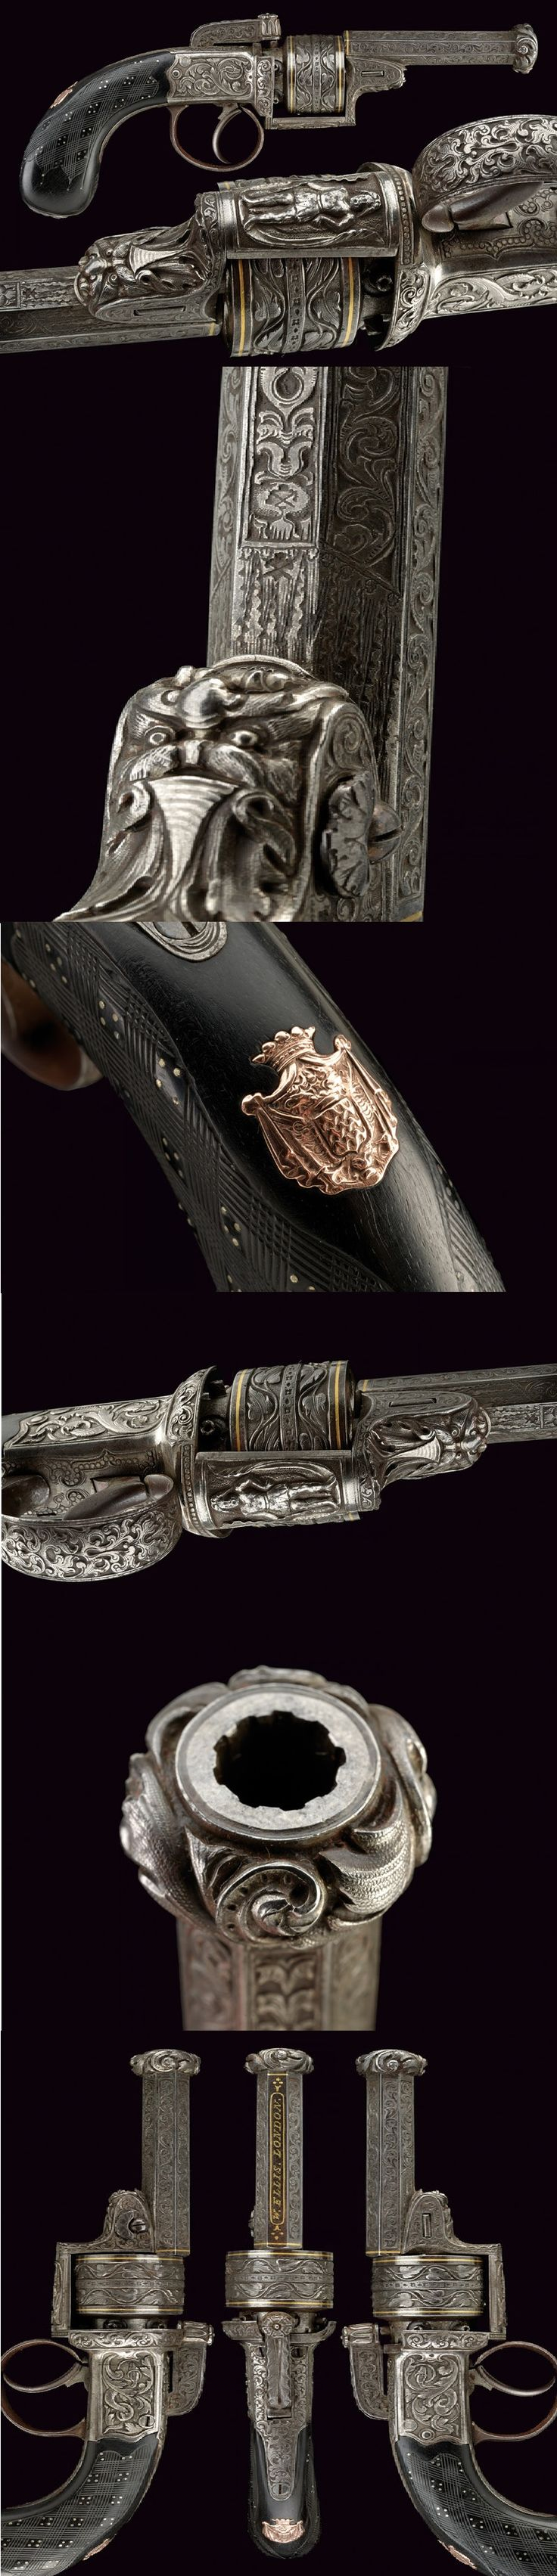 A superb engraved transition percussion revolver by Ellis,   provenance:	 	London dating:	 	mid-19th Century.